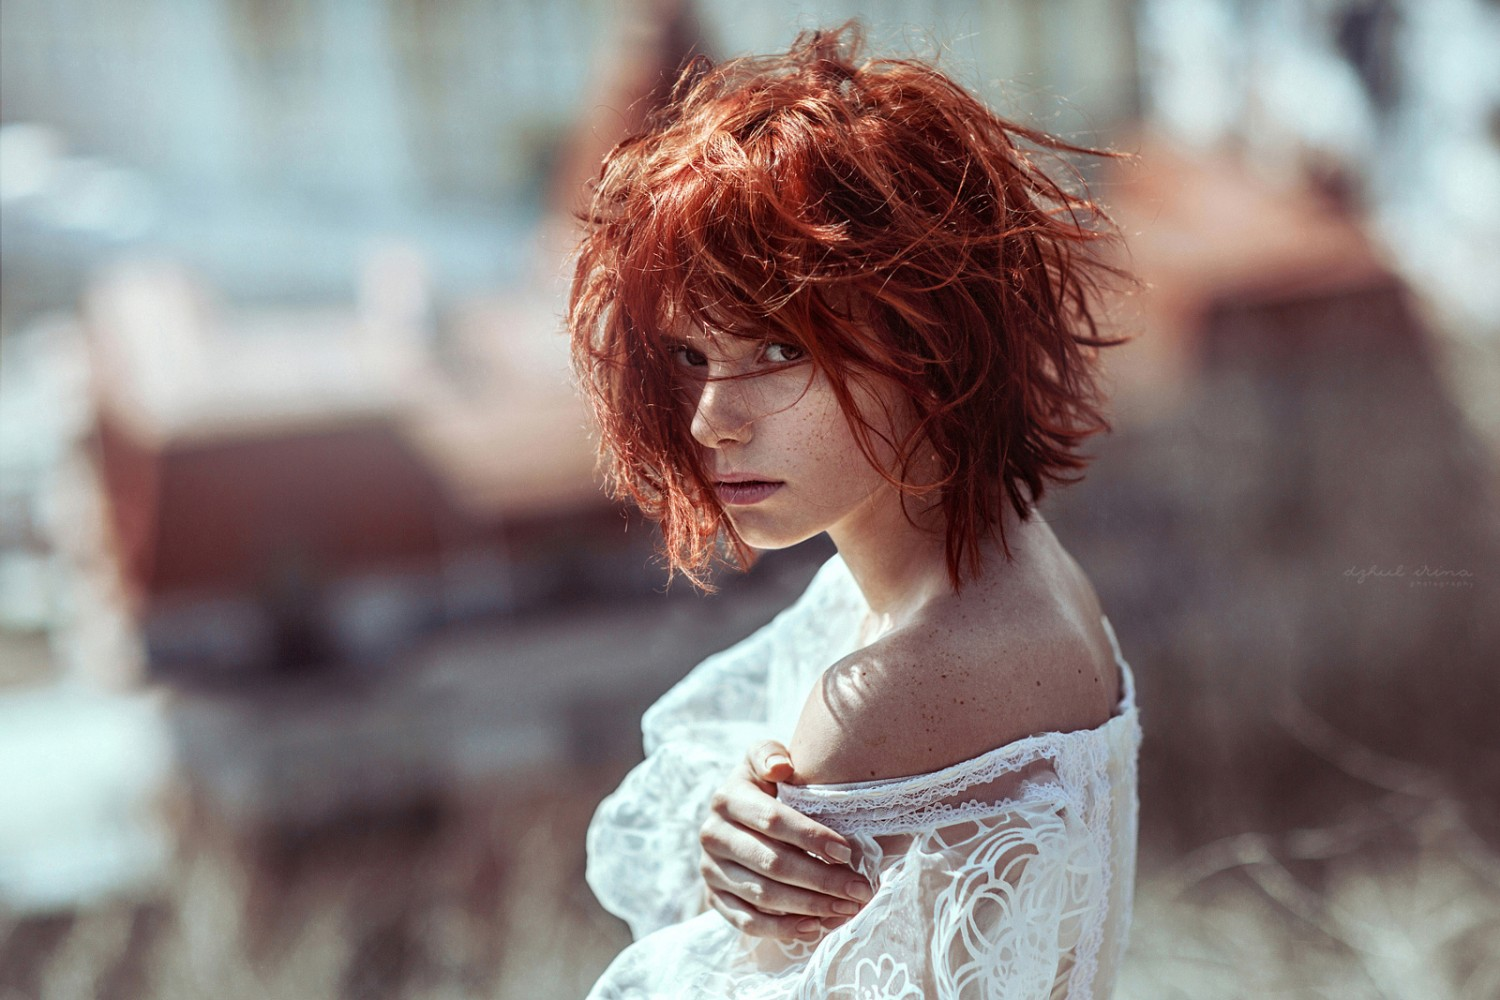 25 Perfect Portraits by Irina Dzhul